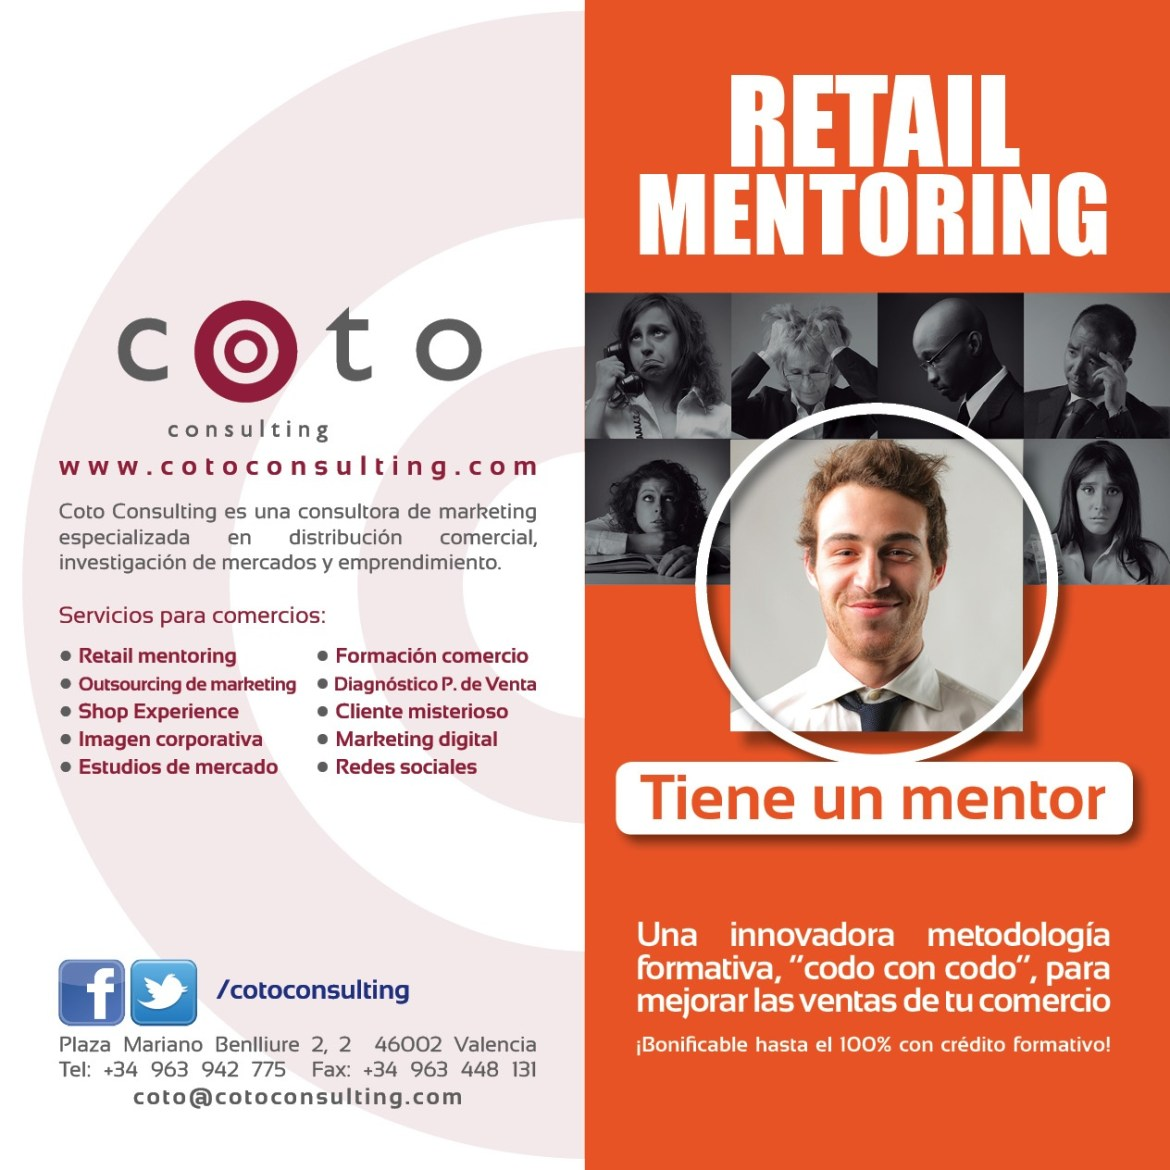 RETAIL MENTORING COTO CONSULTING